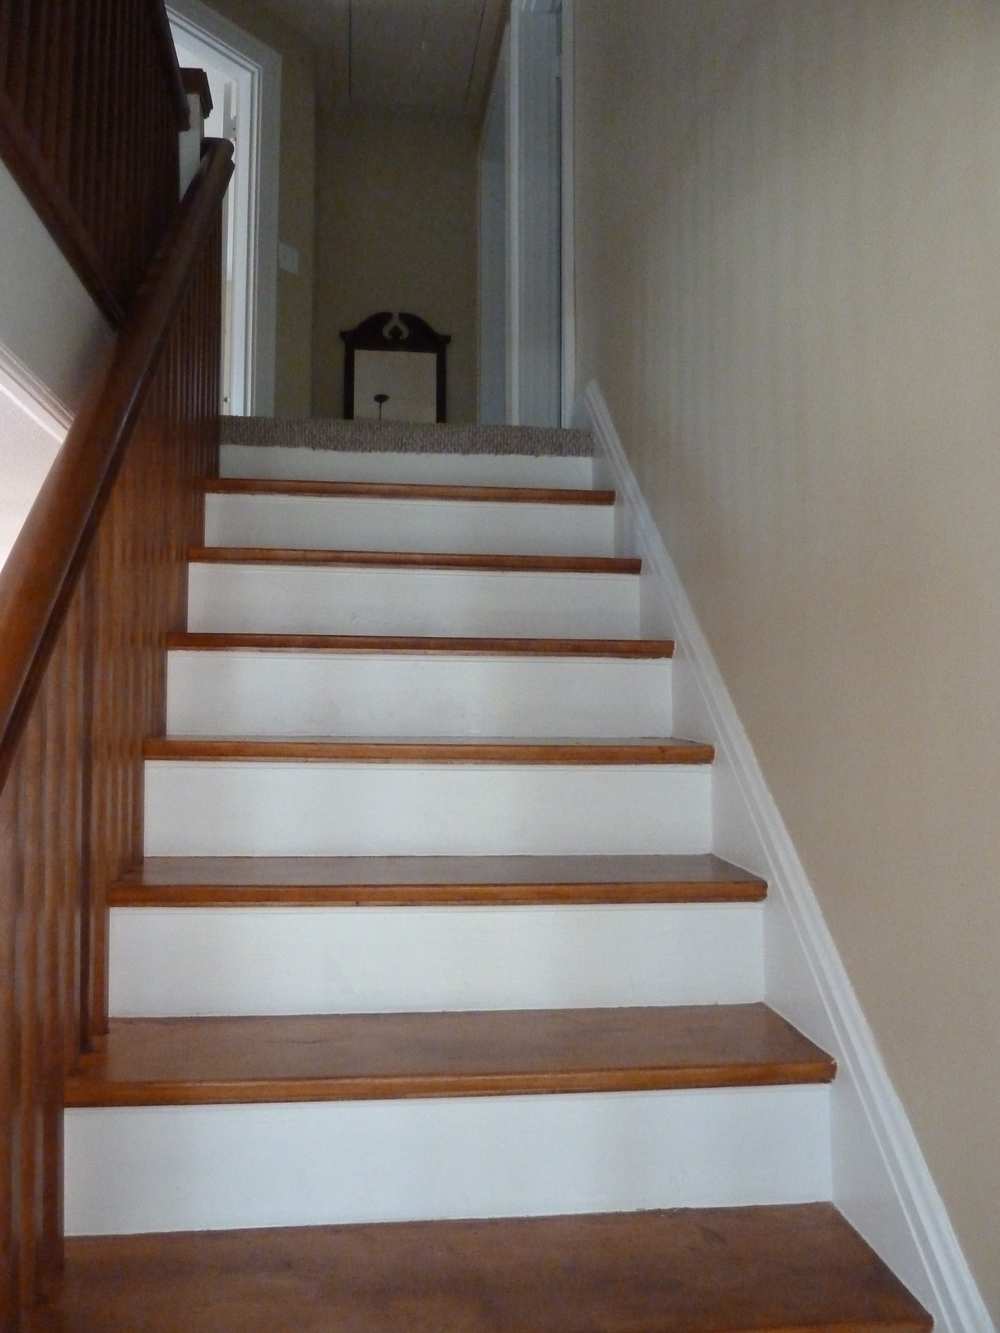 Wood stair case after